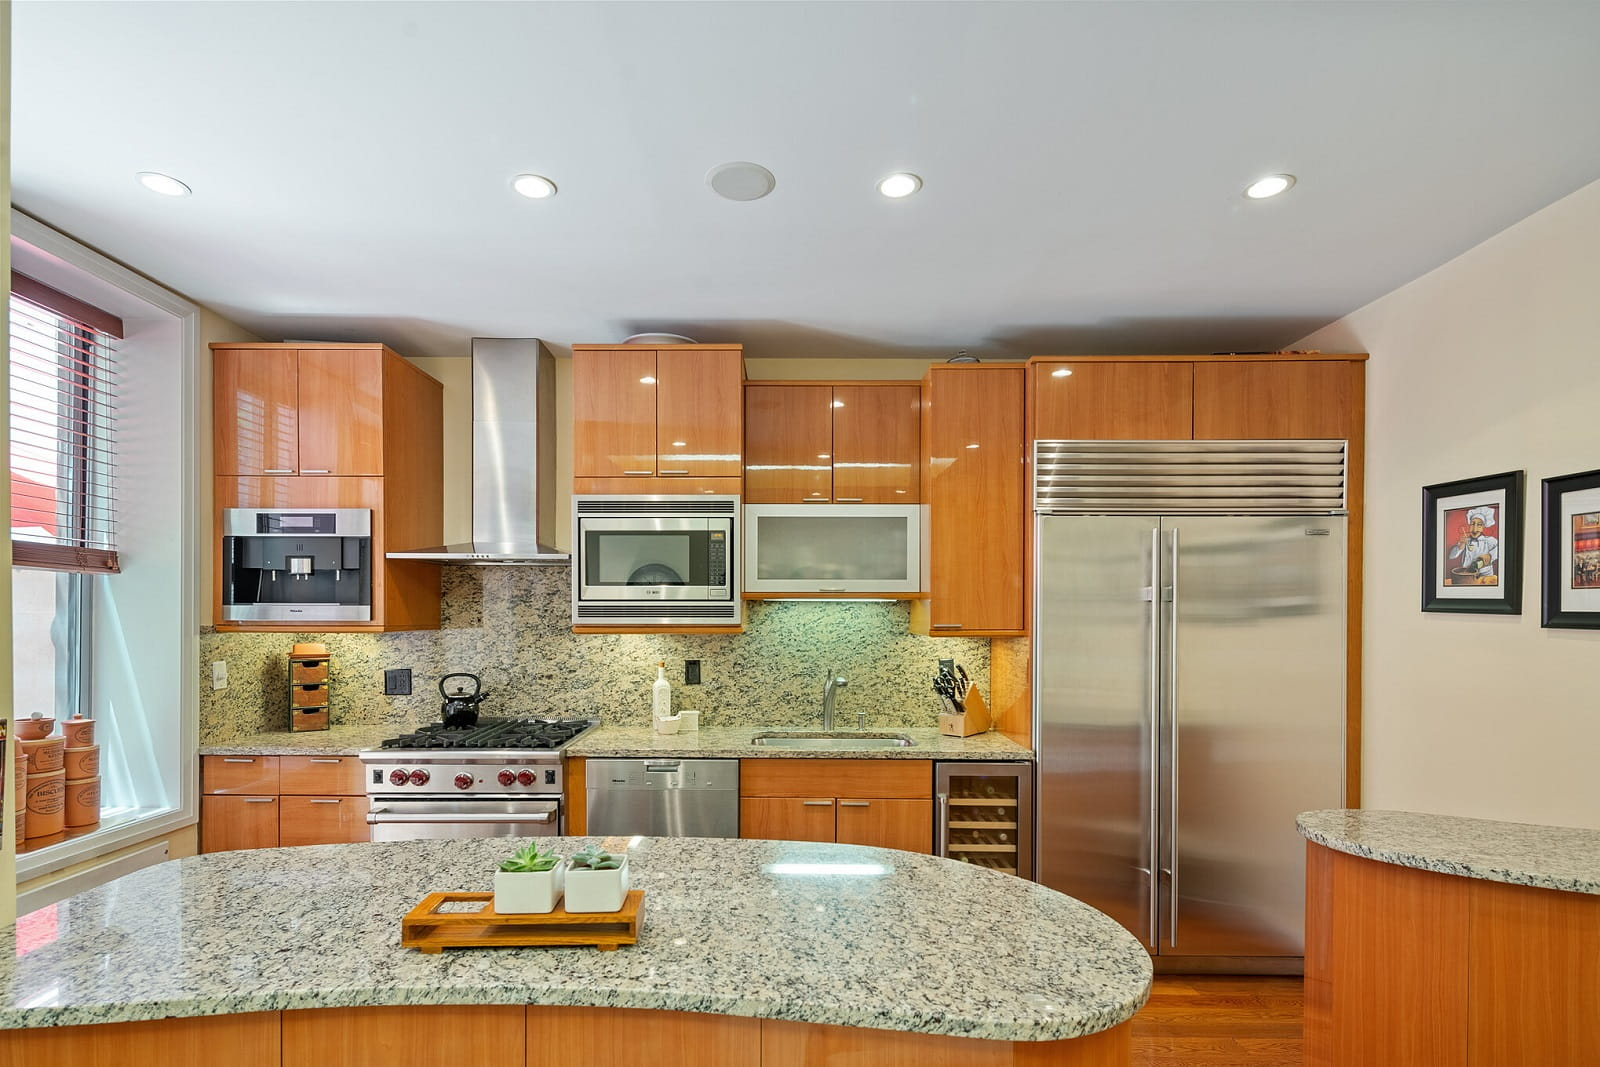 Real Estate Photography in Newyork City - NY - USA - Kitchen View